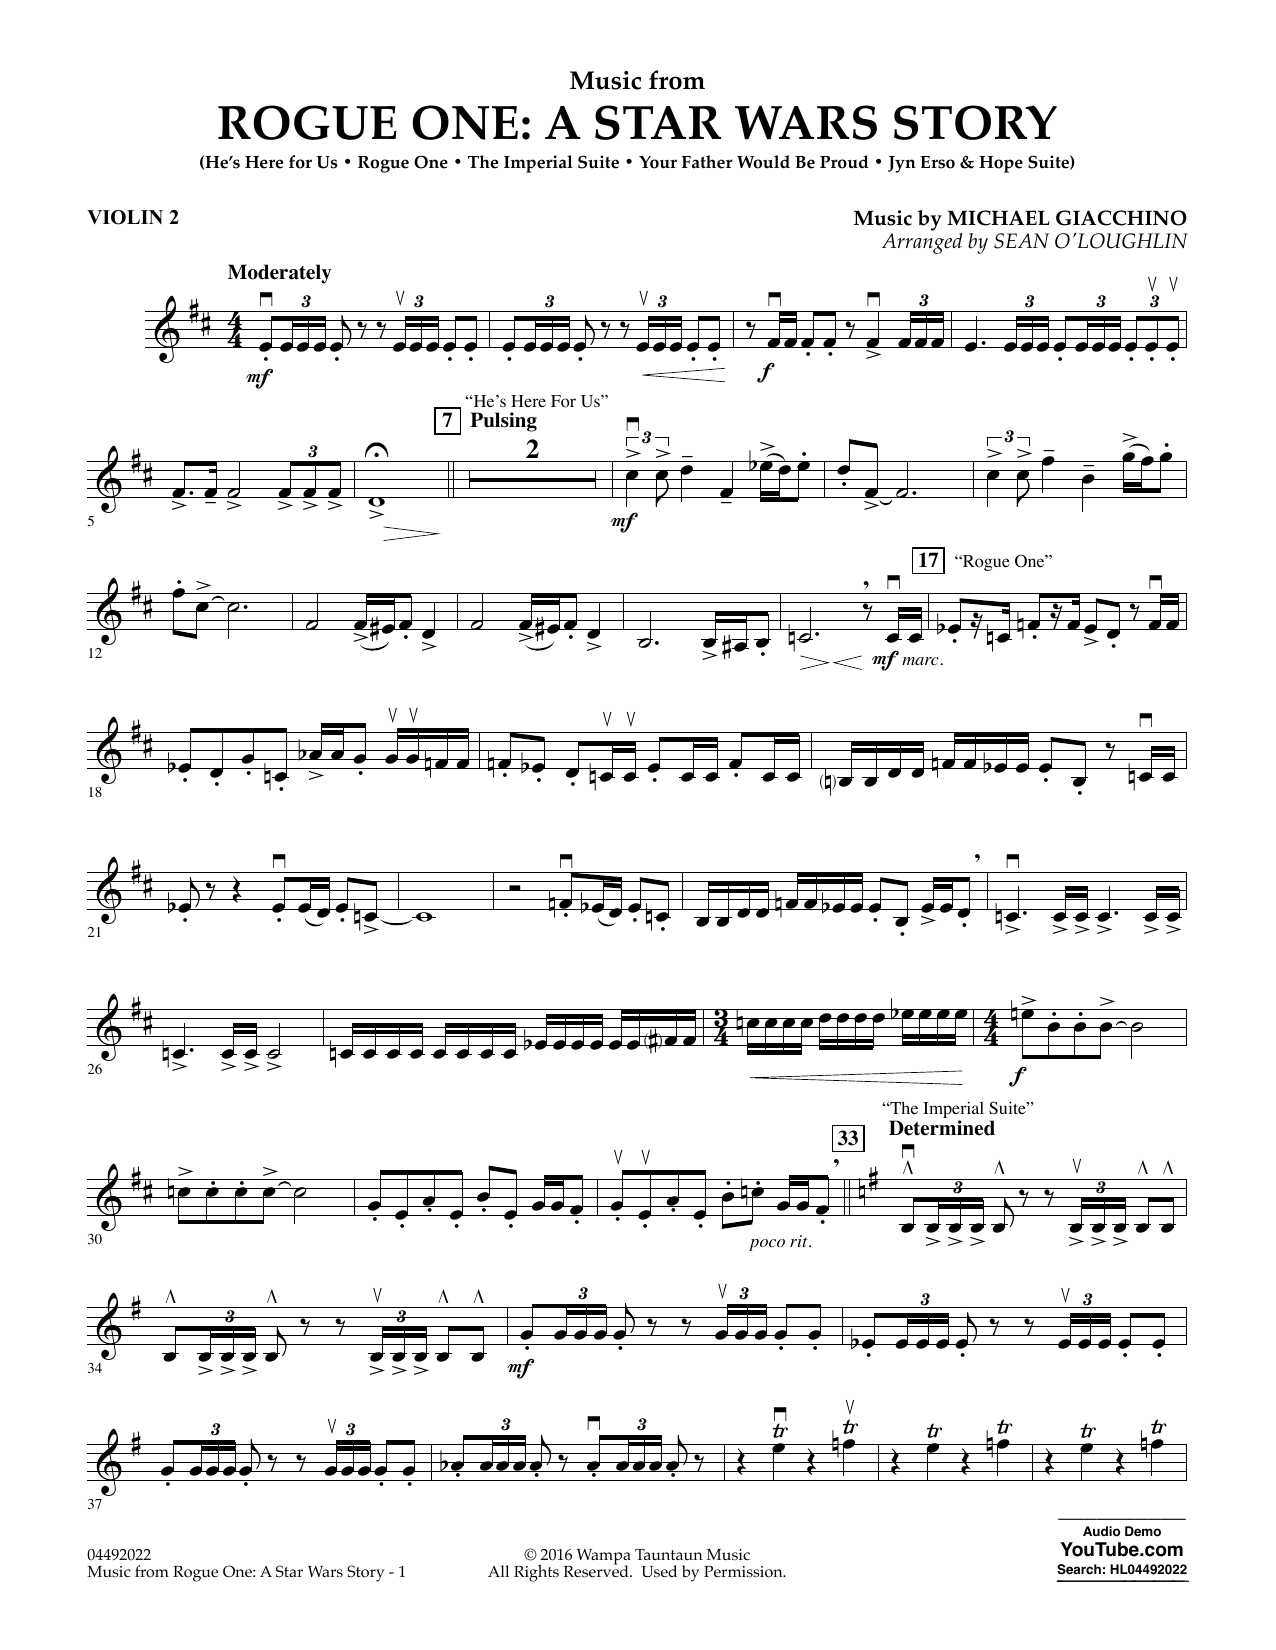 Sean O'Loughlin Music from Rogue One: A Star Wars Story - Violin 2 sheet music notes and chords. Download Printable PDF.